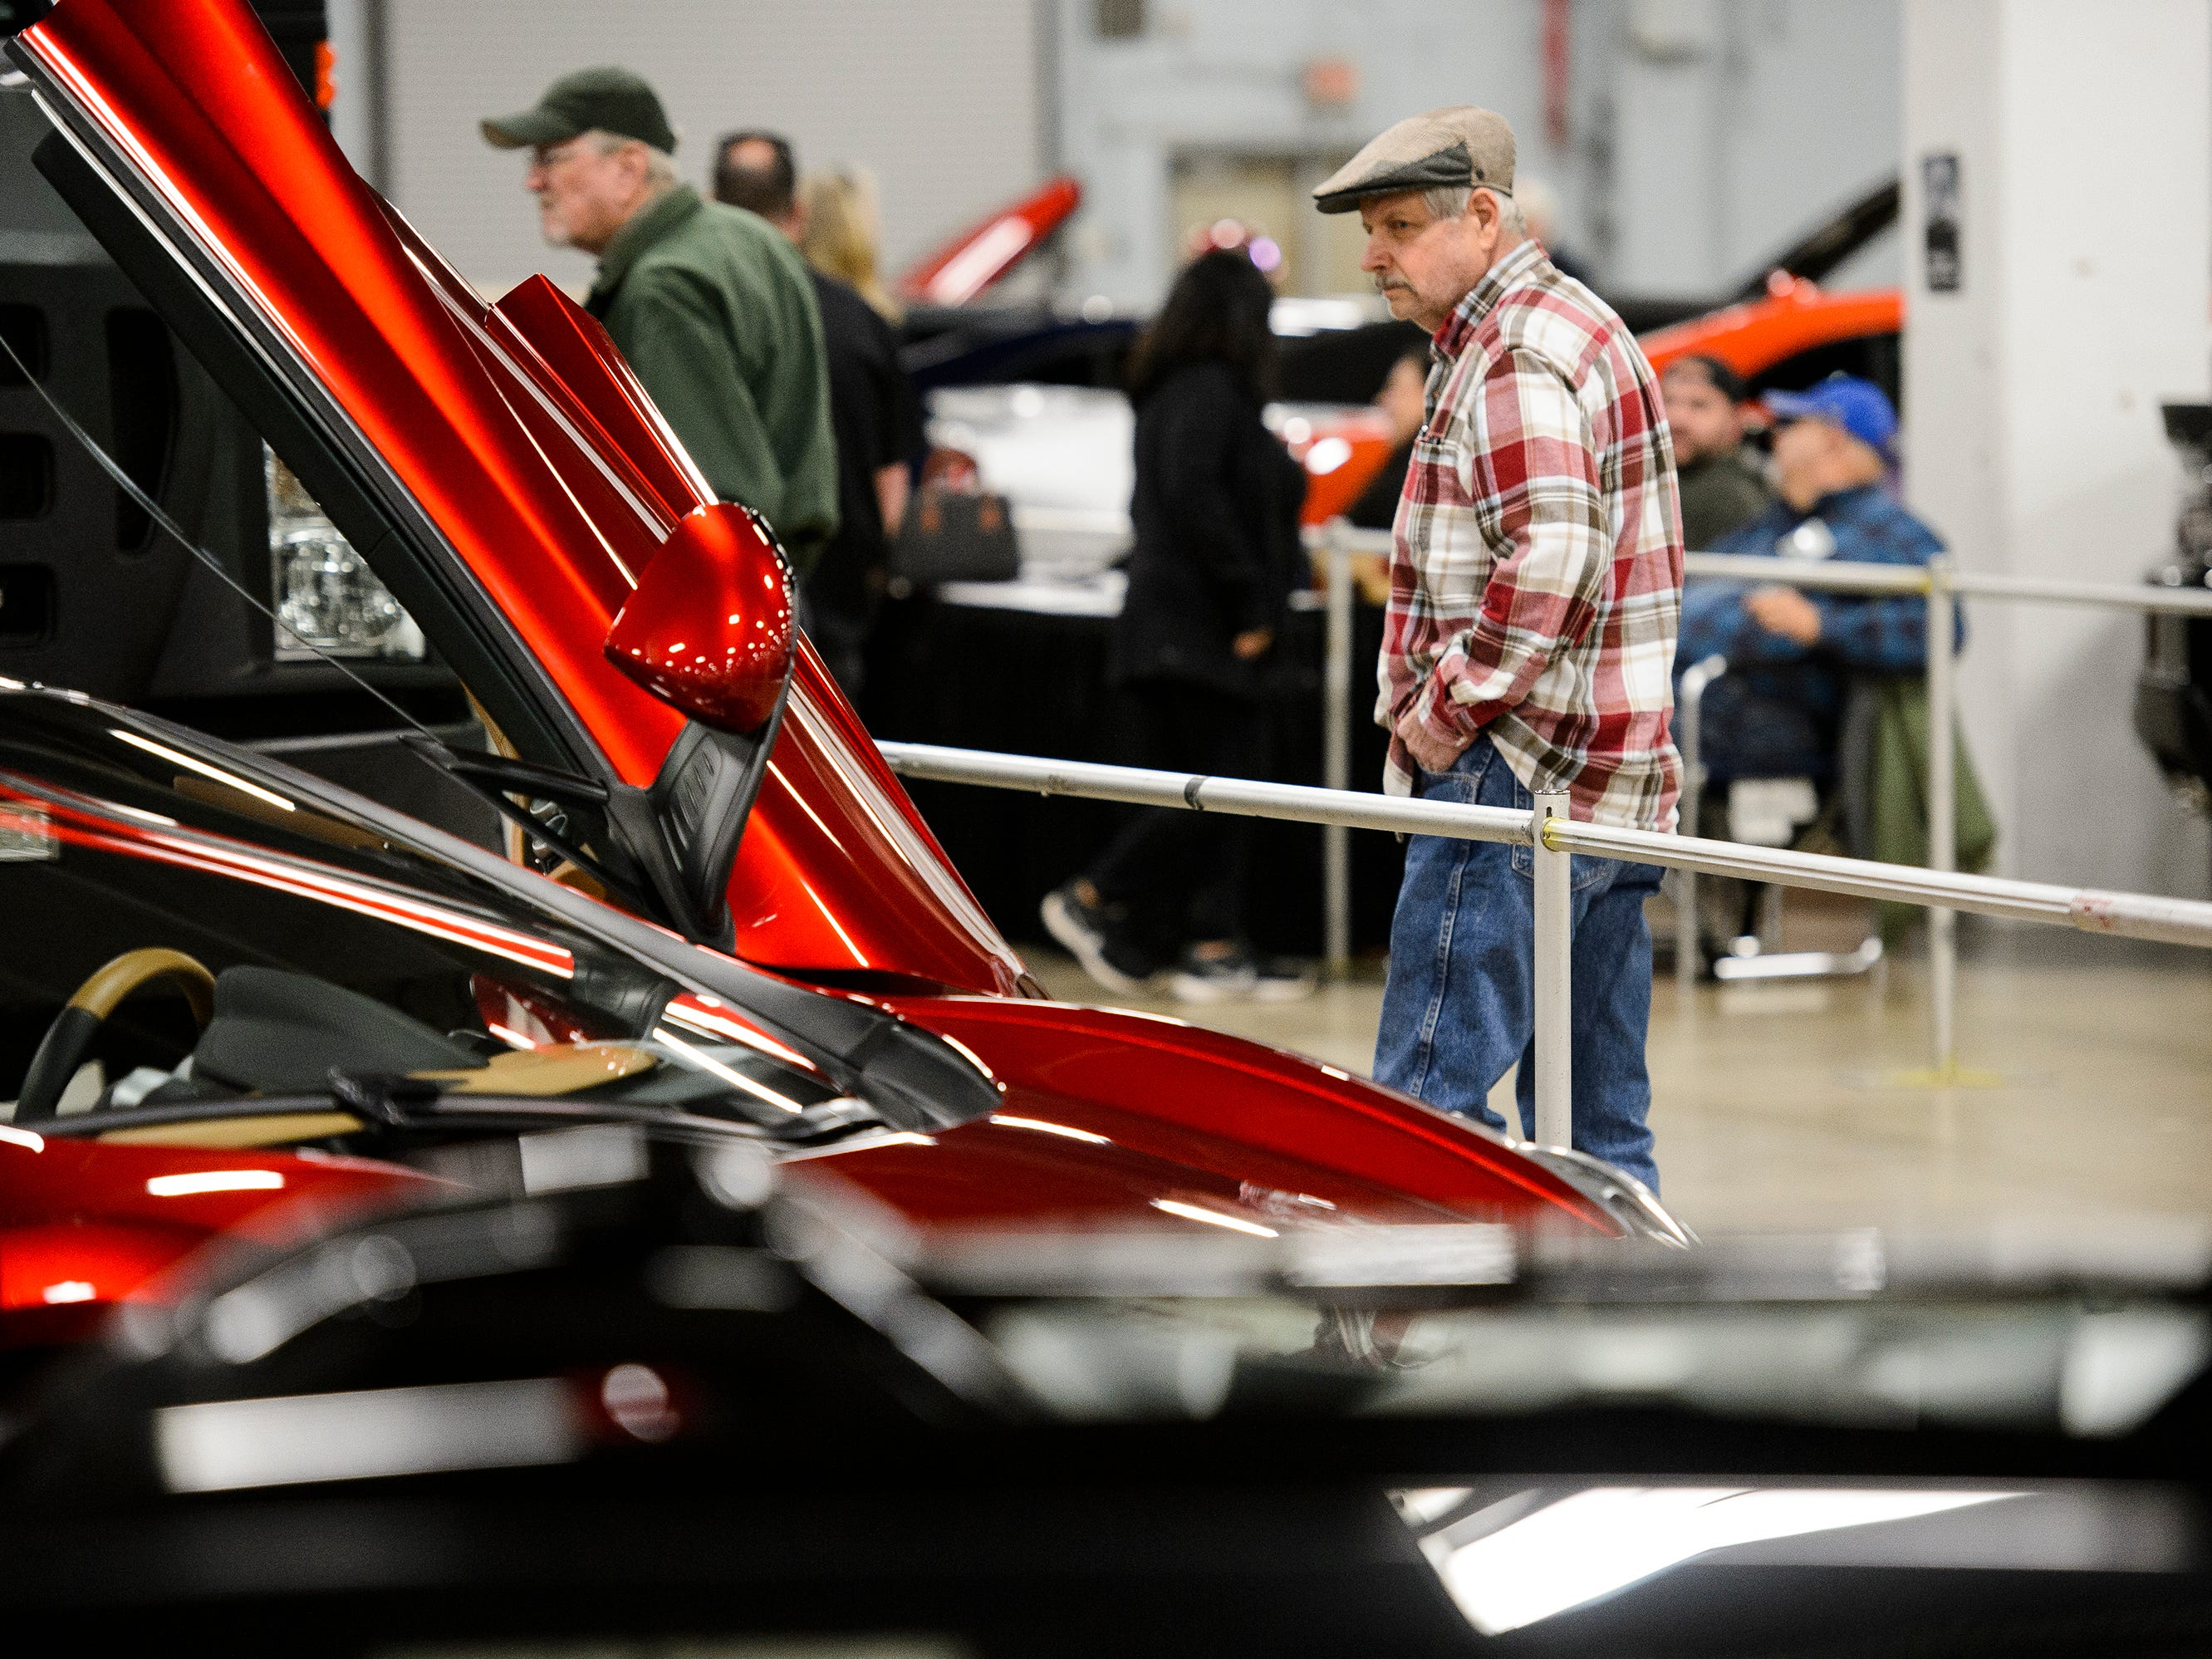 Al Schaefer looks at exotic cars during the South Carolina International Auto Show Friday, Jan. 11, 2019 at the Greenville Convention Center.